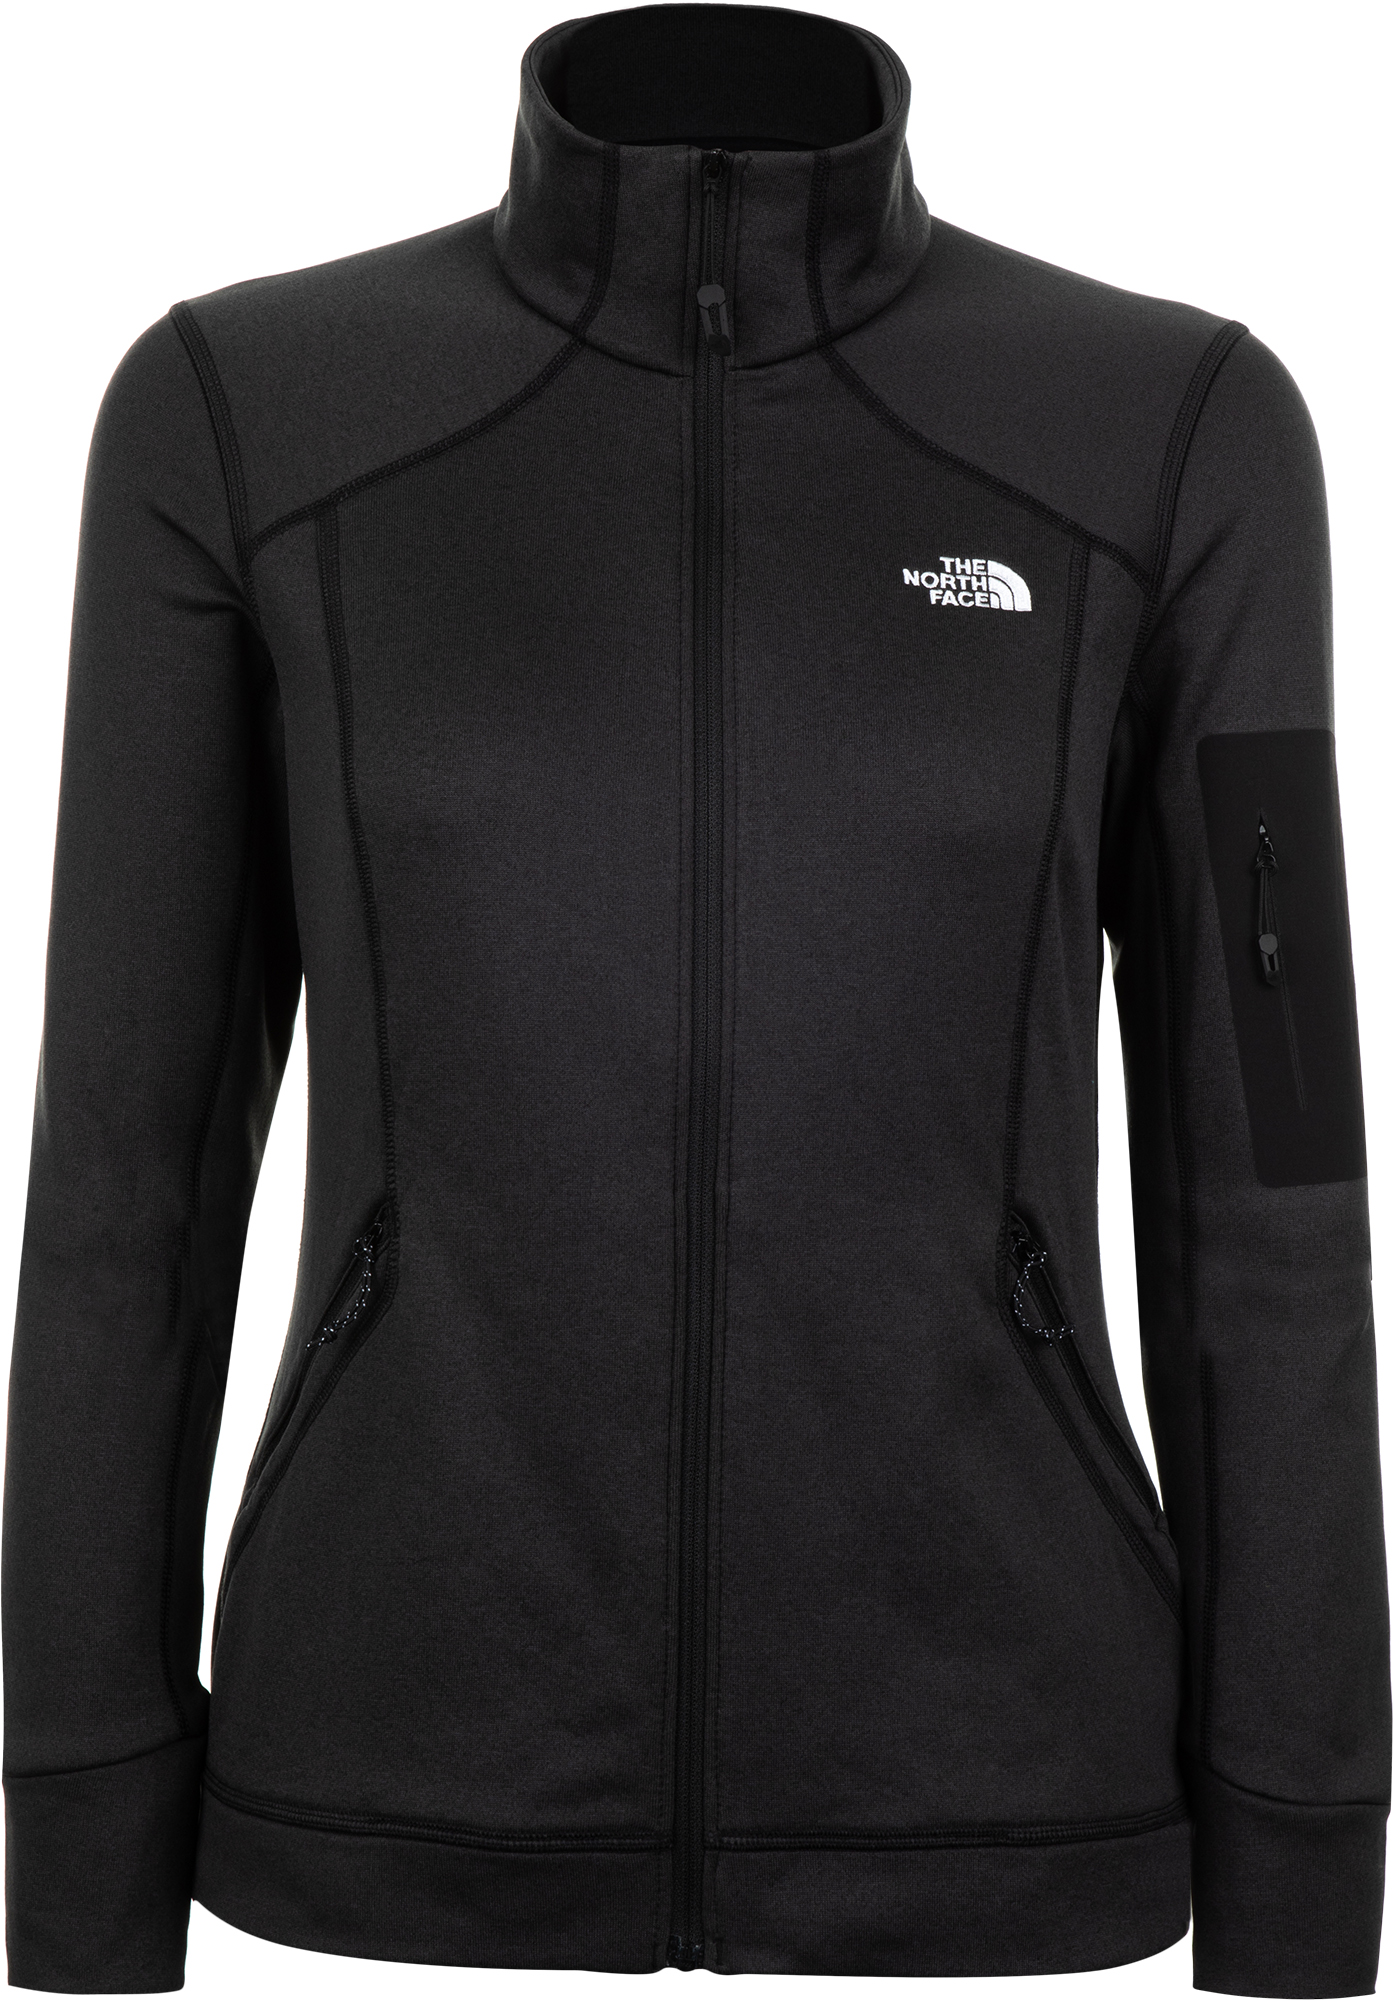 The North Face Джемпер флисовый женский The North Face Impendor Powerdry, размер 48 цена и фото